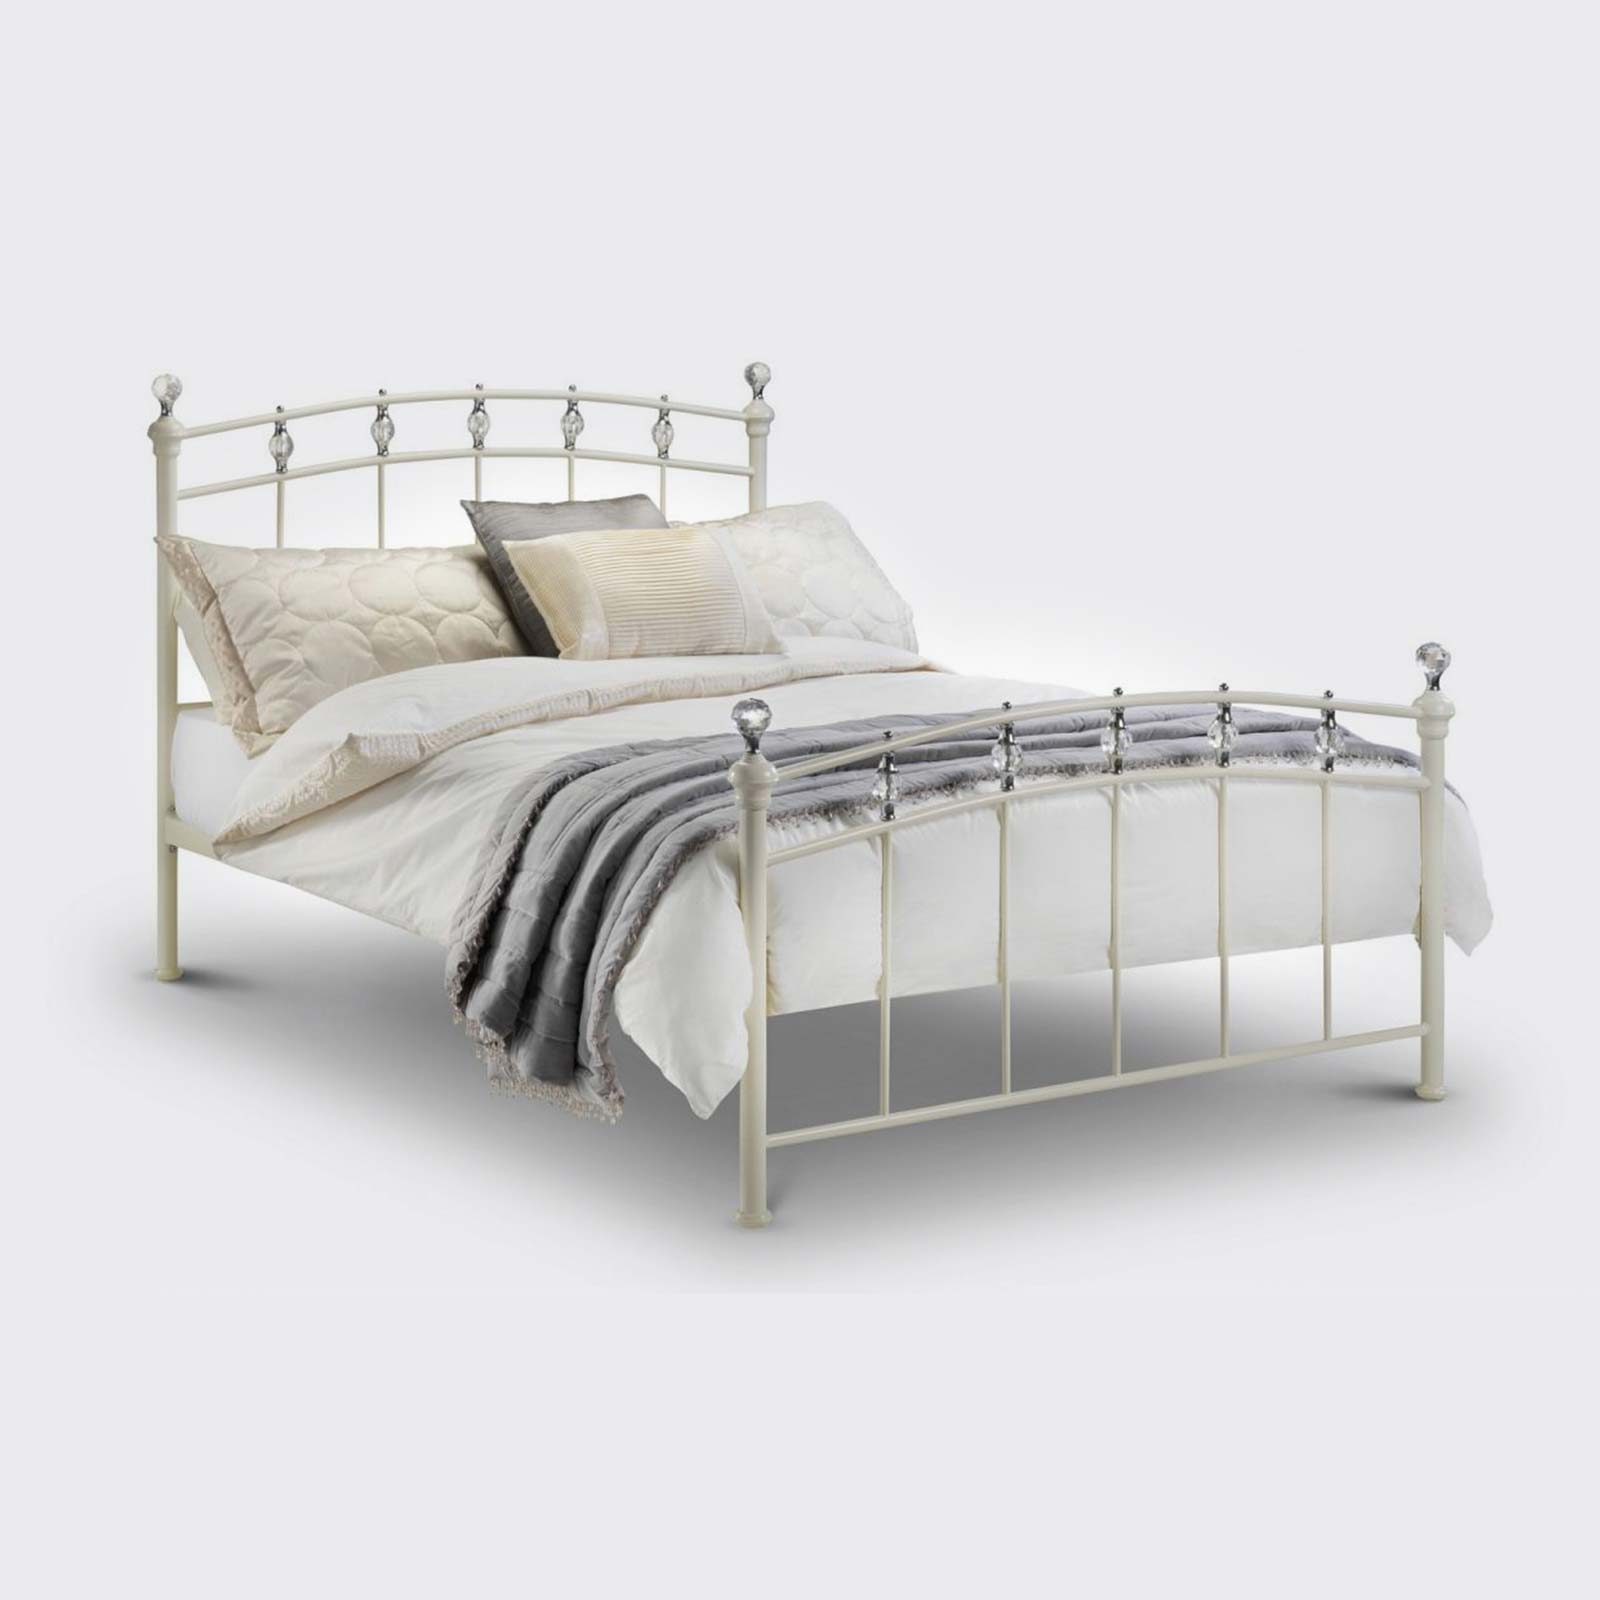 Sophie bed with Rio mattress